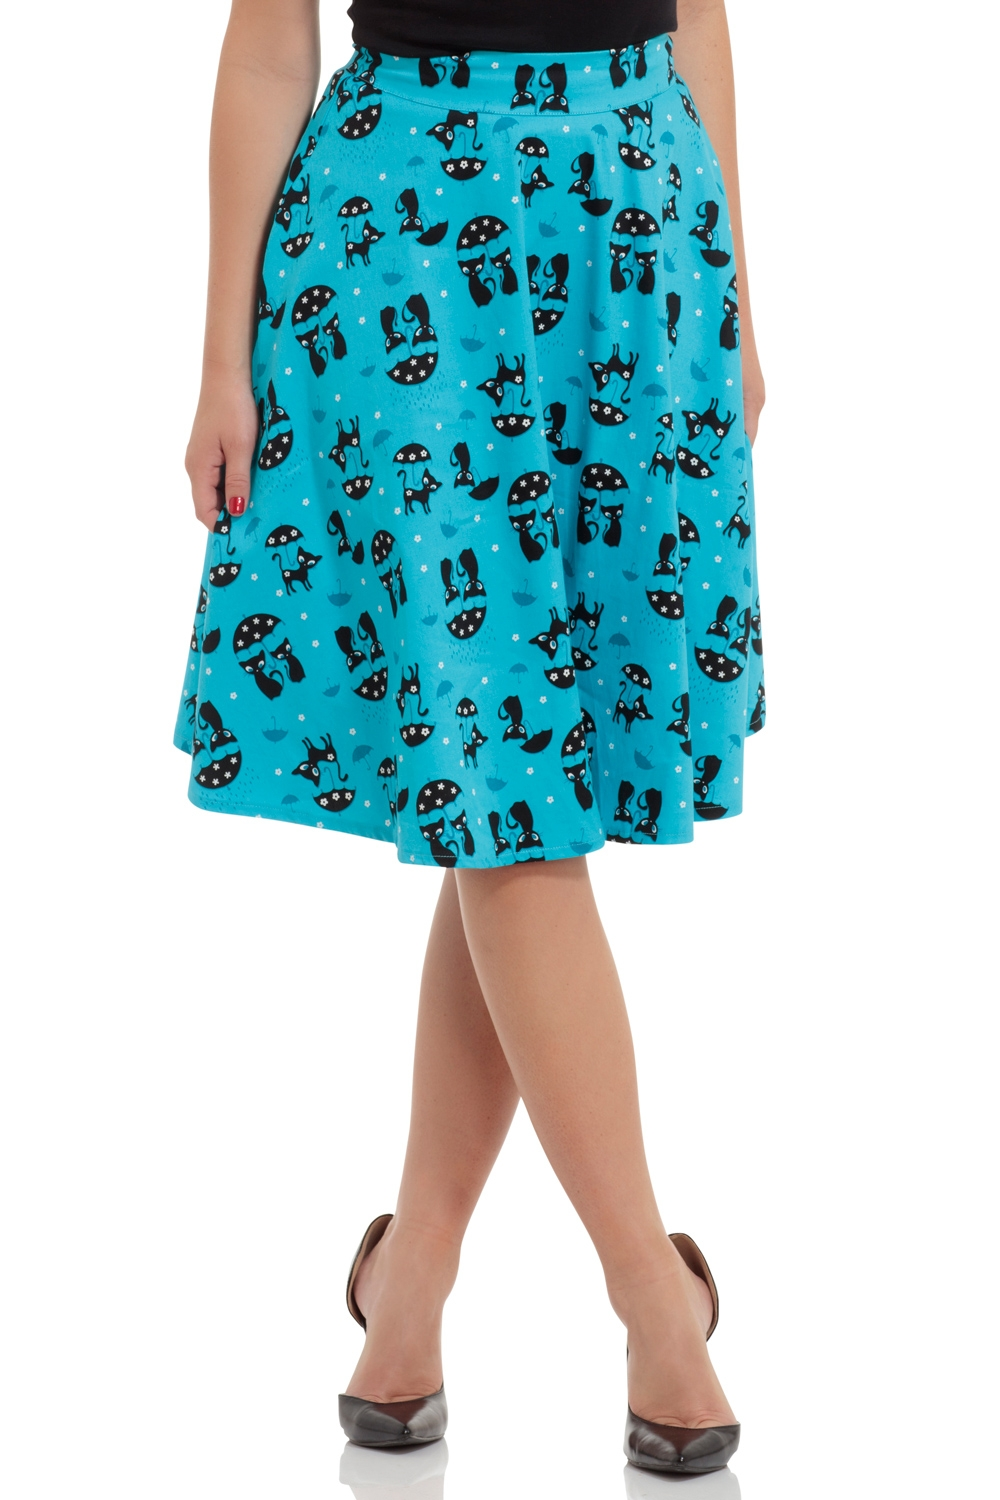 Morgana Blue Retro Cat Skirt